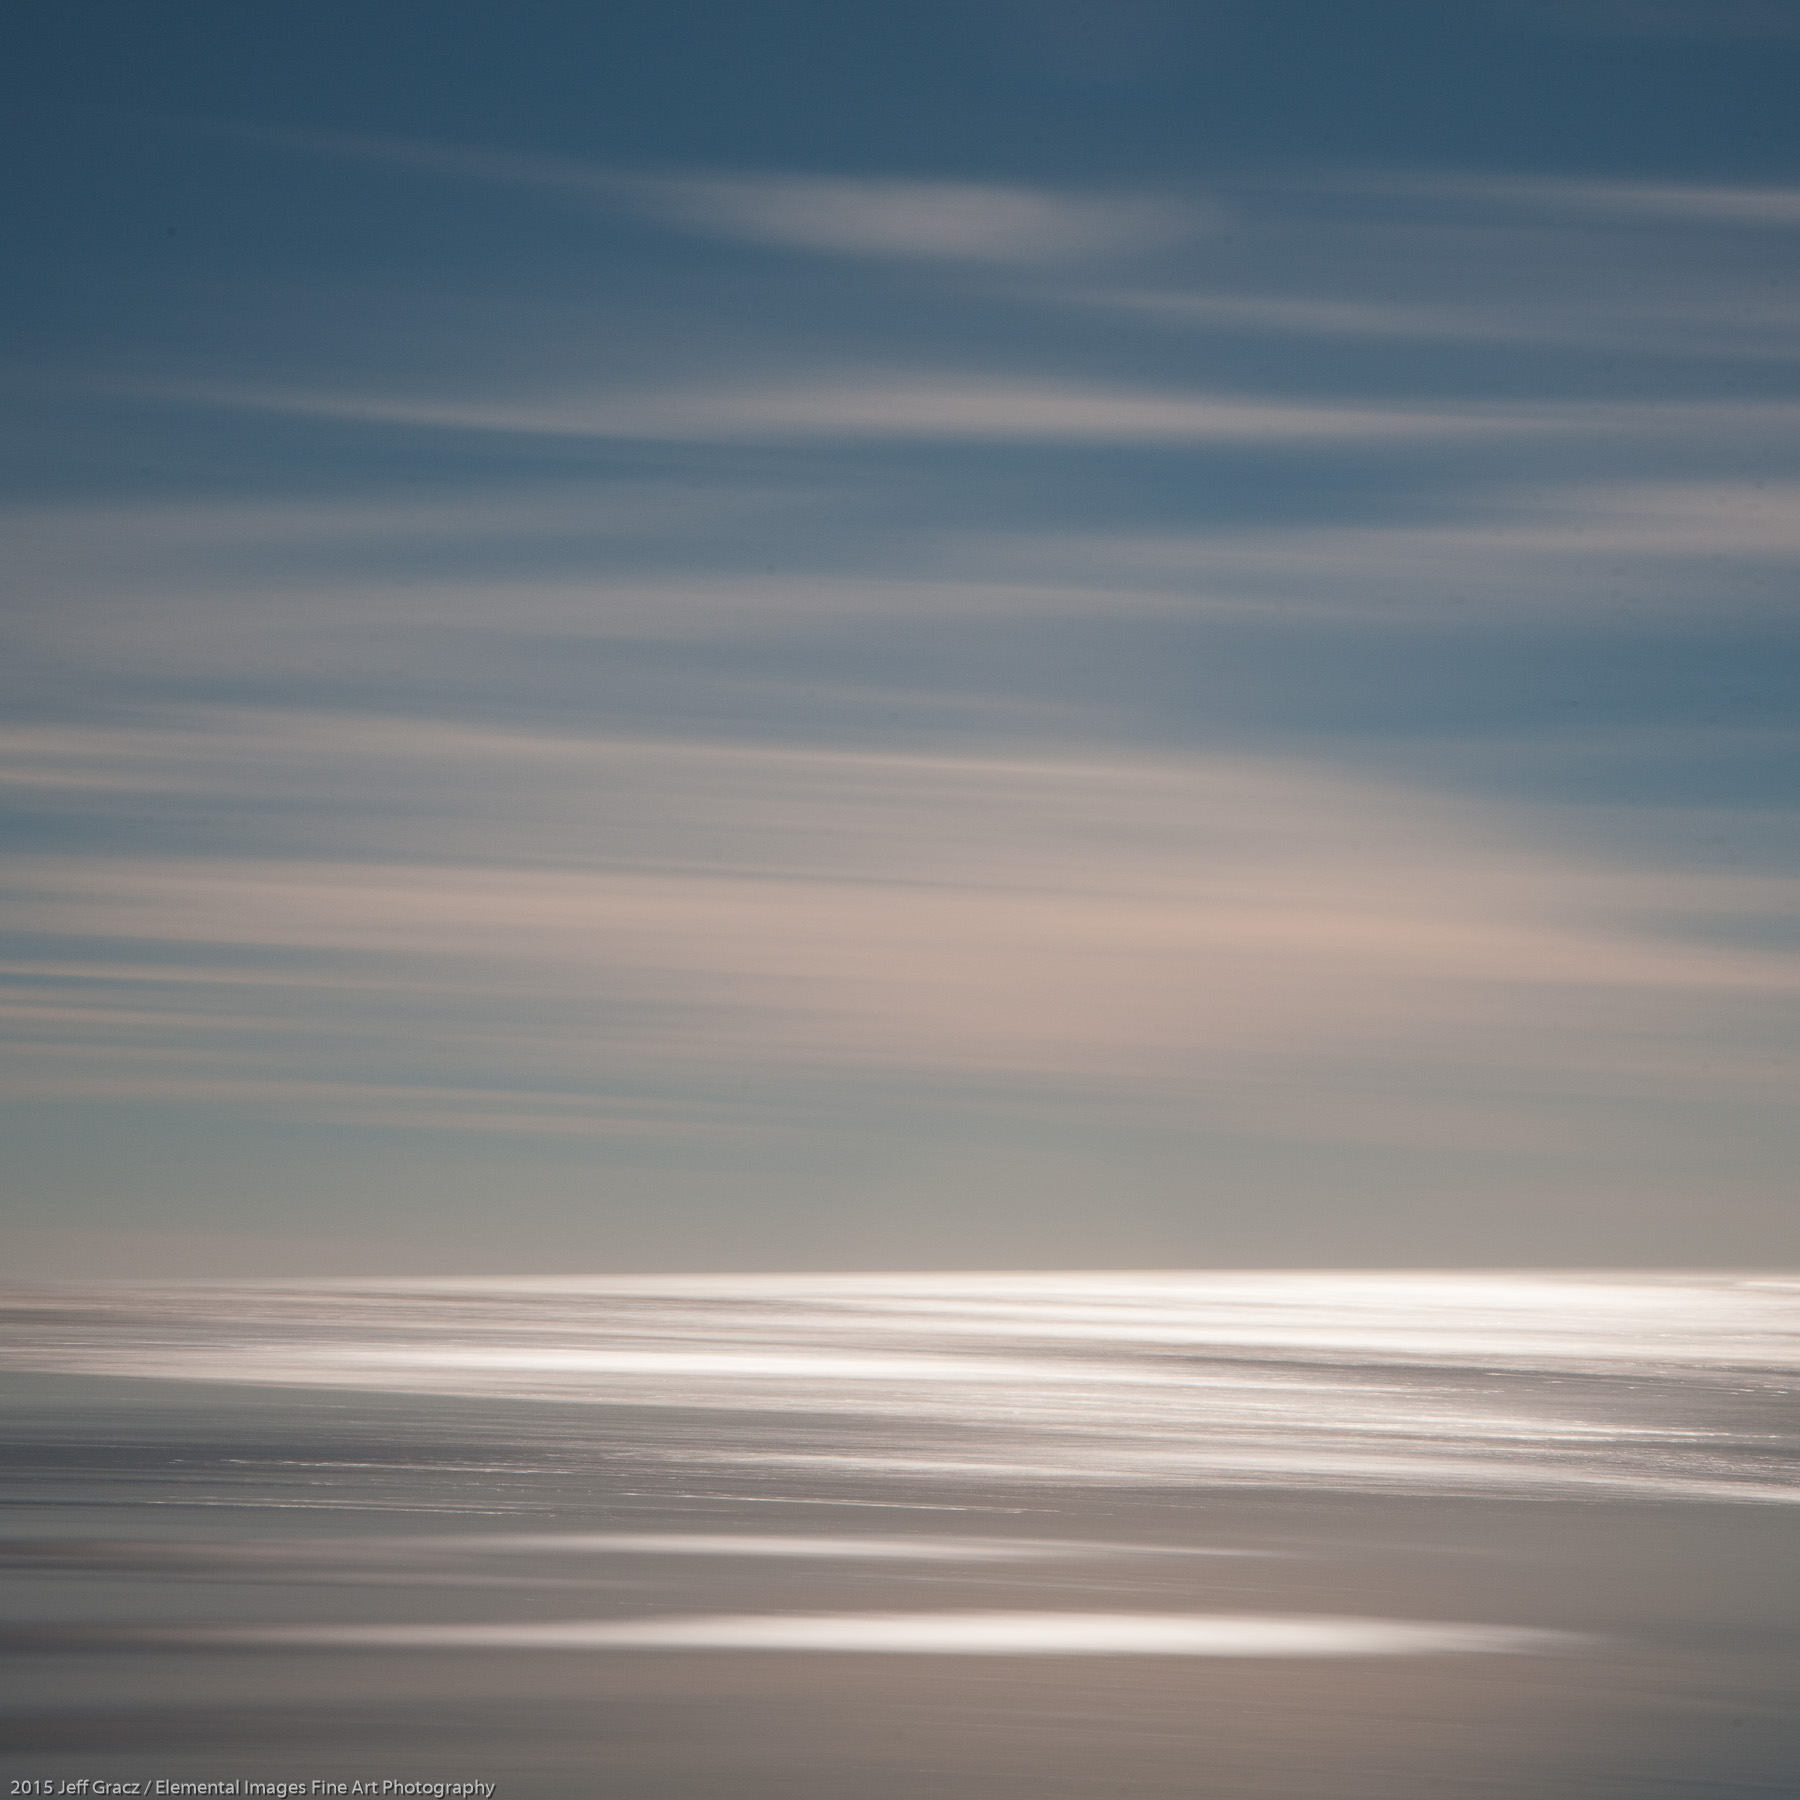 Sea and Sky XLIV | Long Beach | WA | USA - © 2015 Jeff Gracz / Elemental Images Fine Art Photography - All Rights Reserved Worldwide